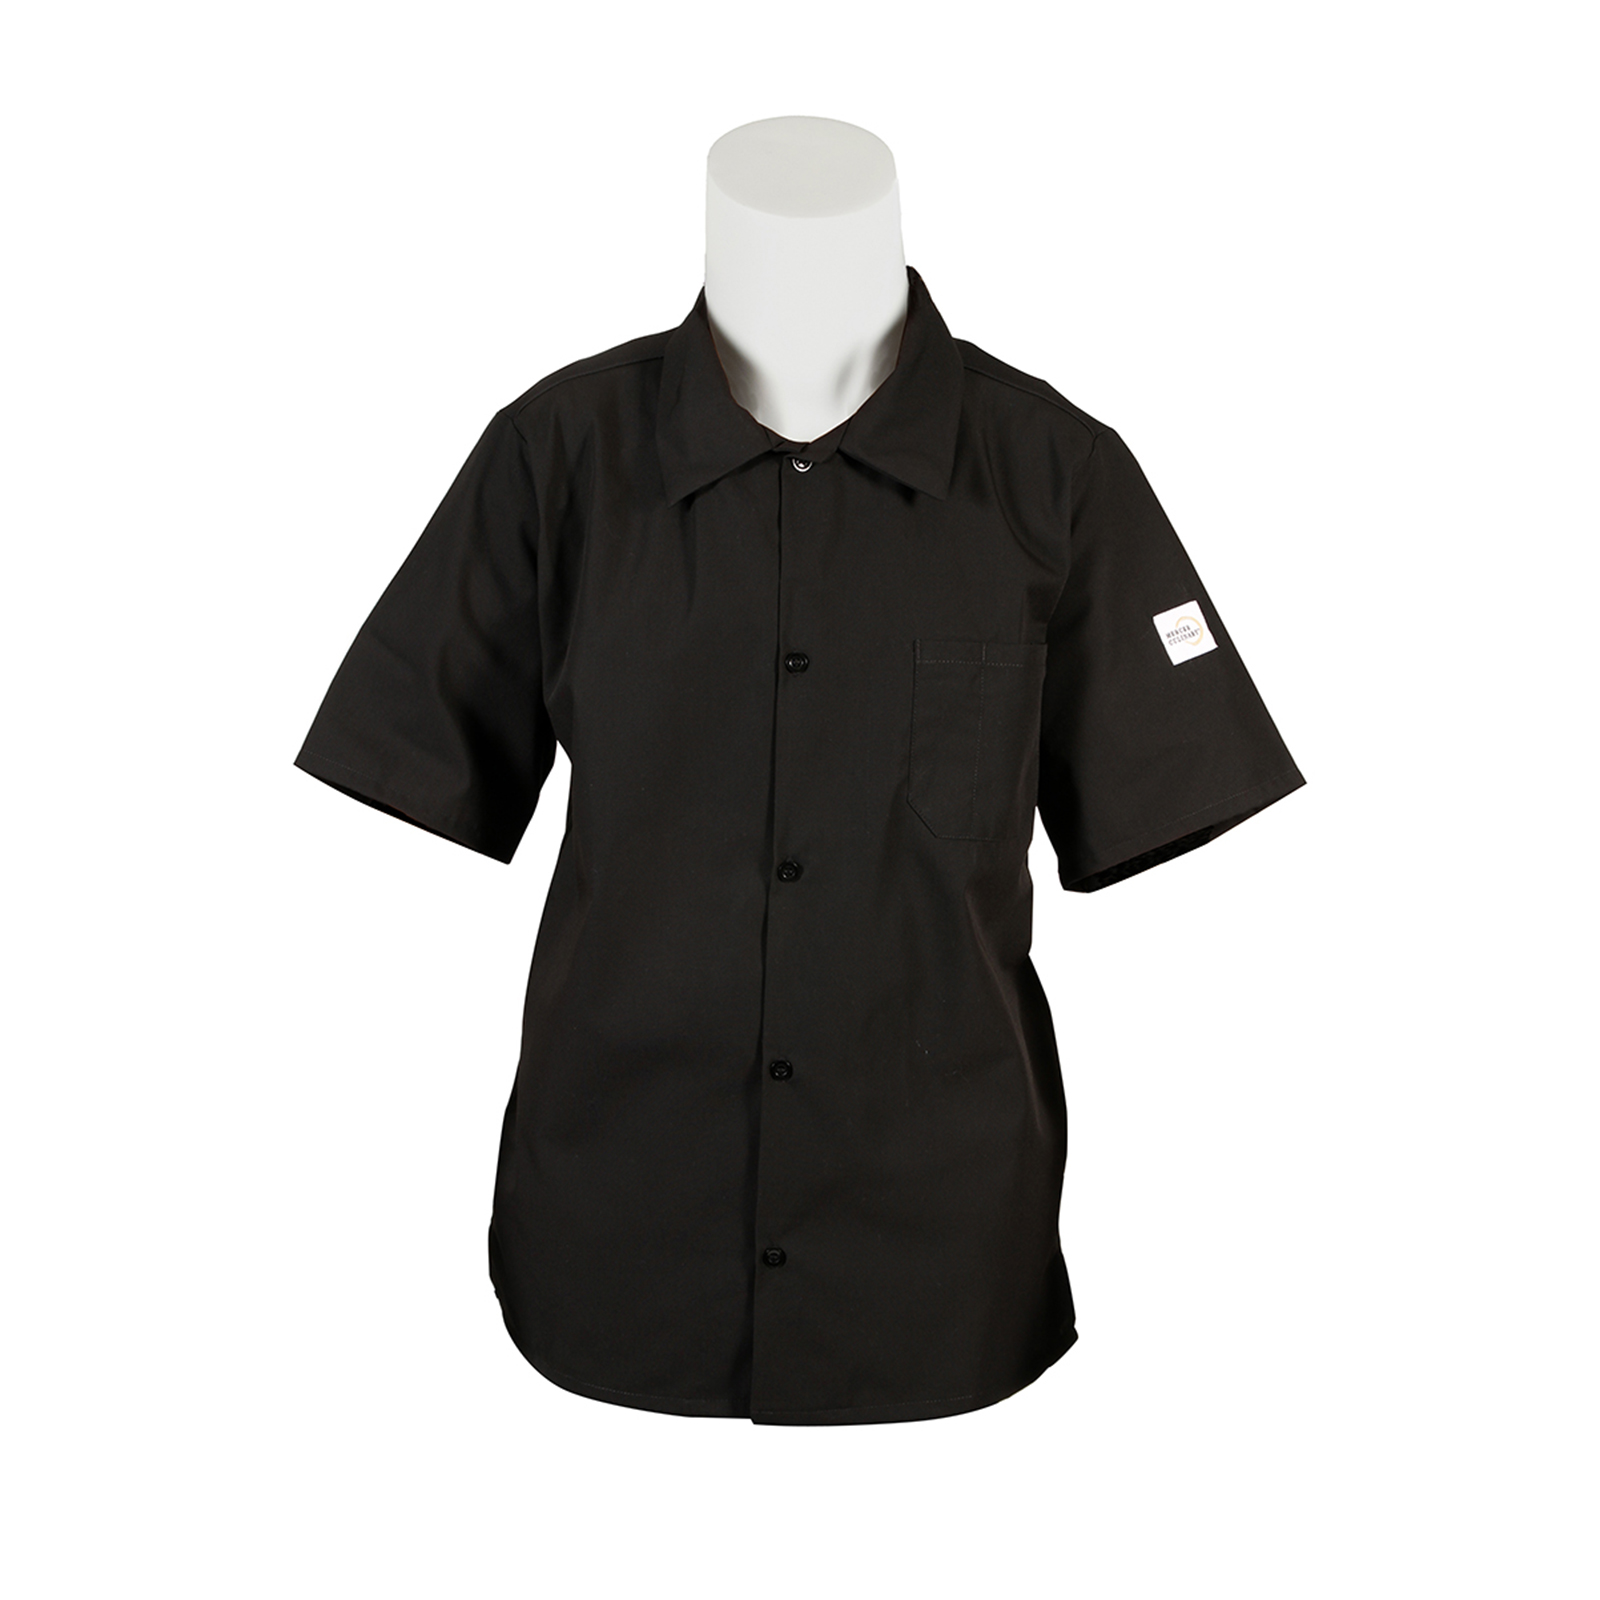 Mercer Culinary M60200BK7X cook's shirt